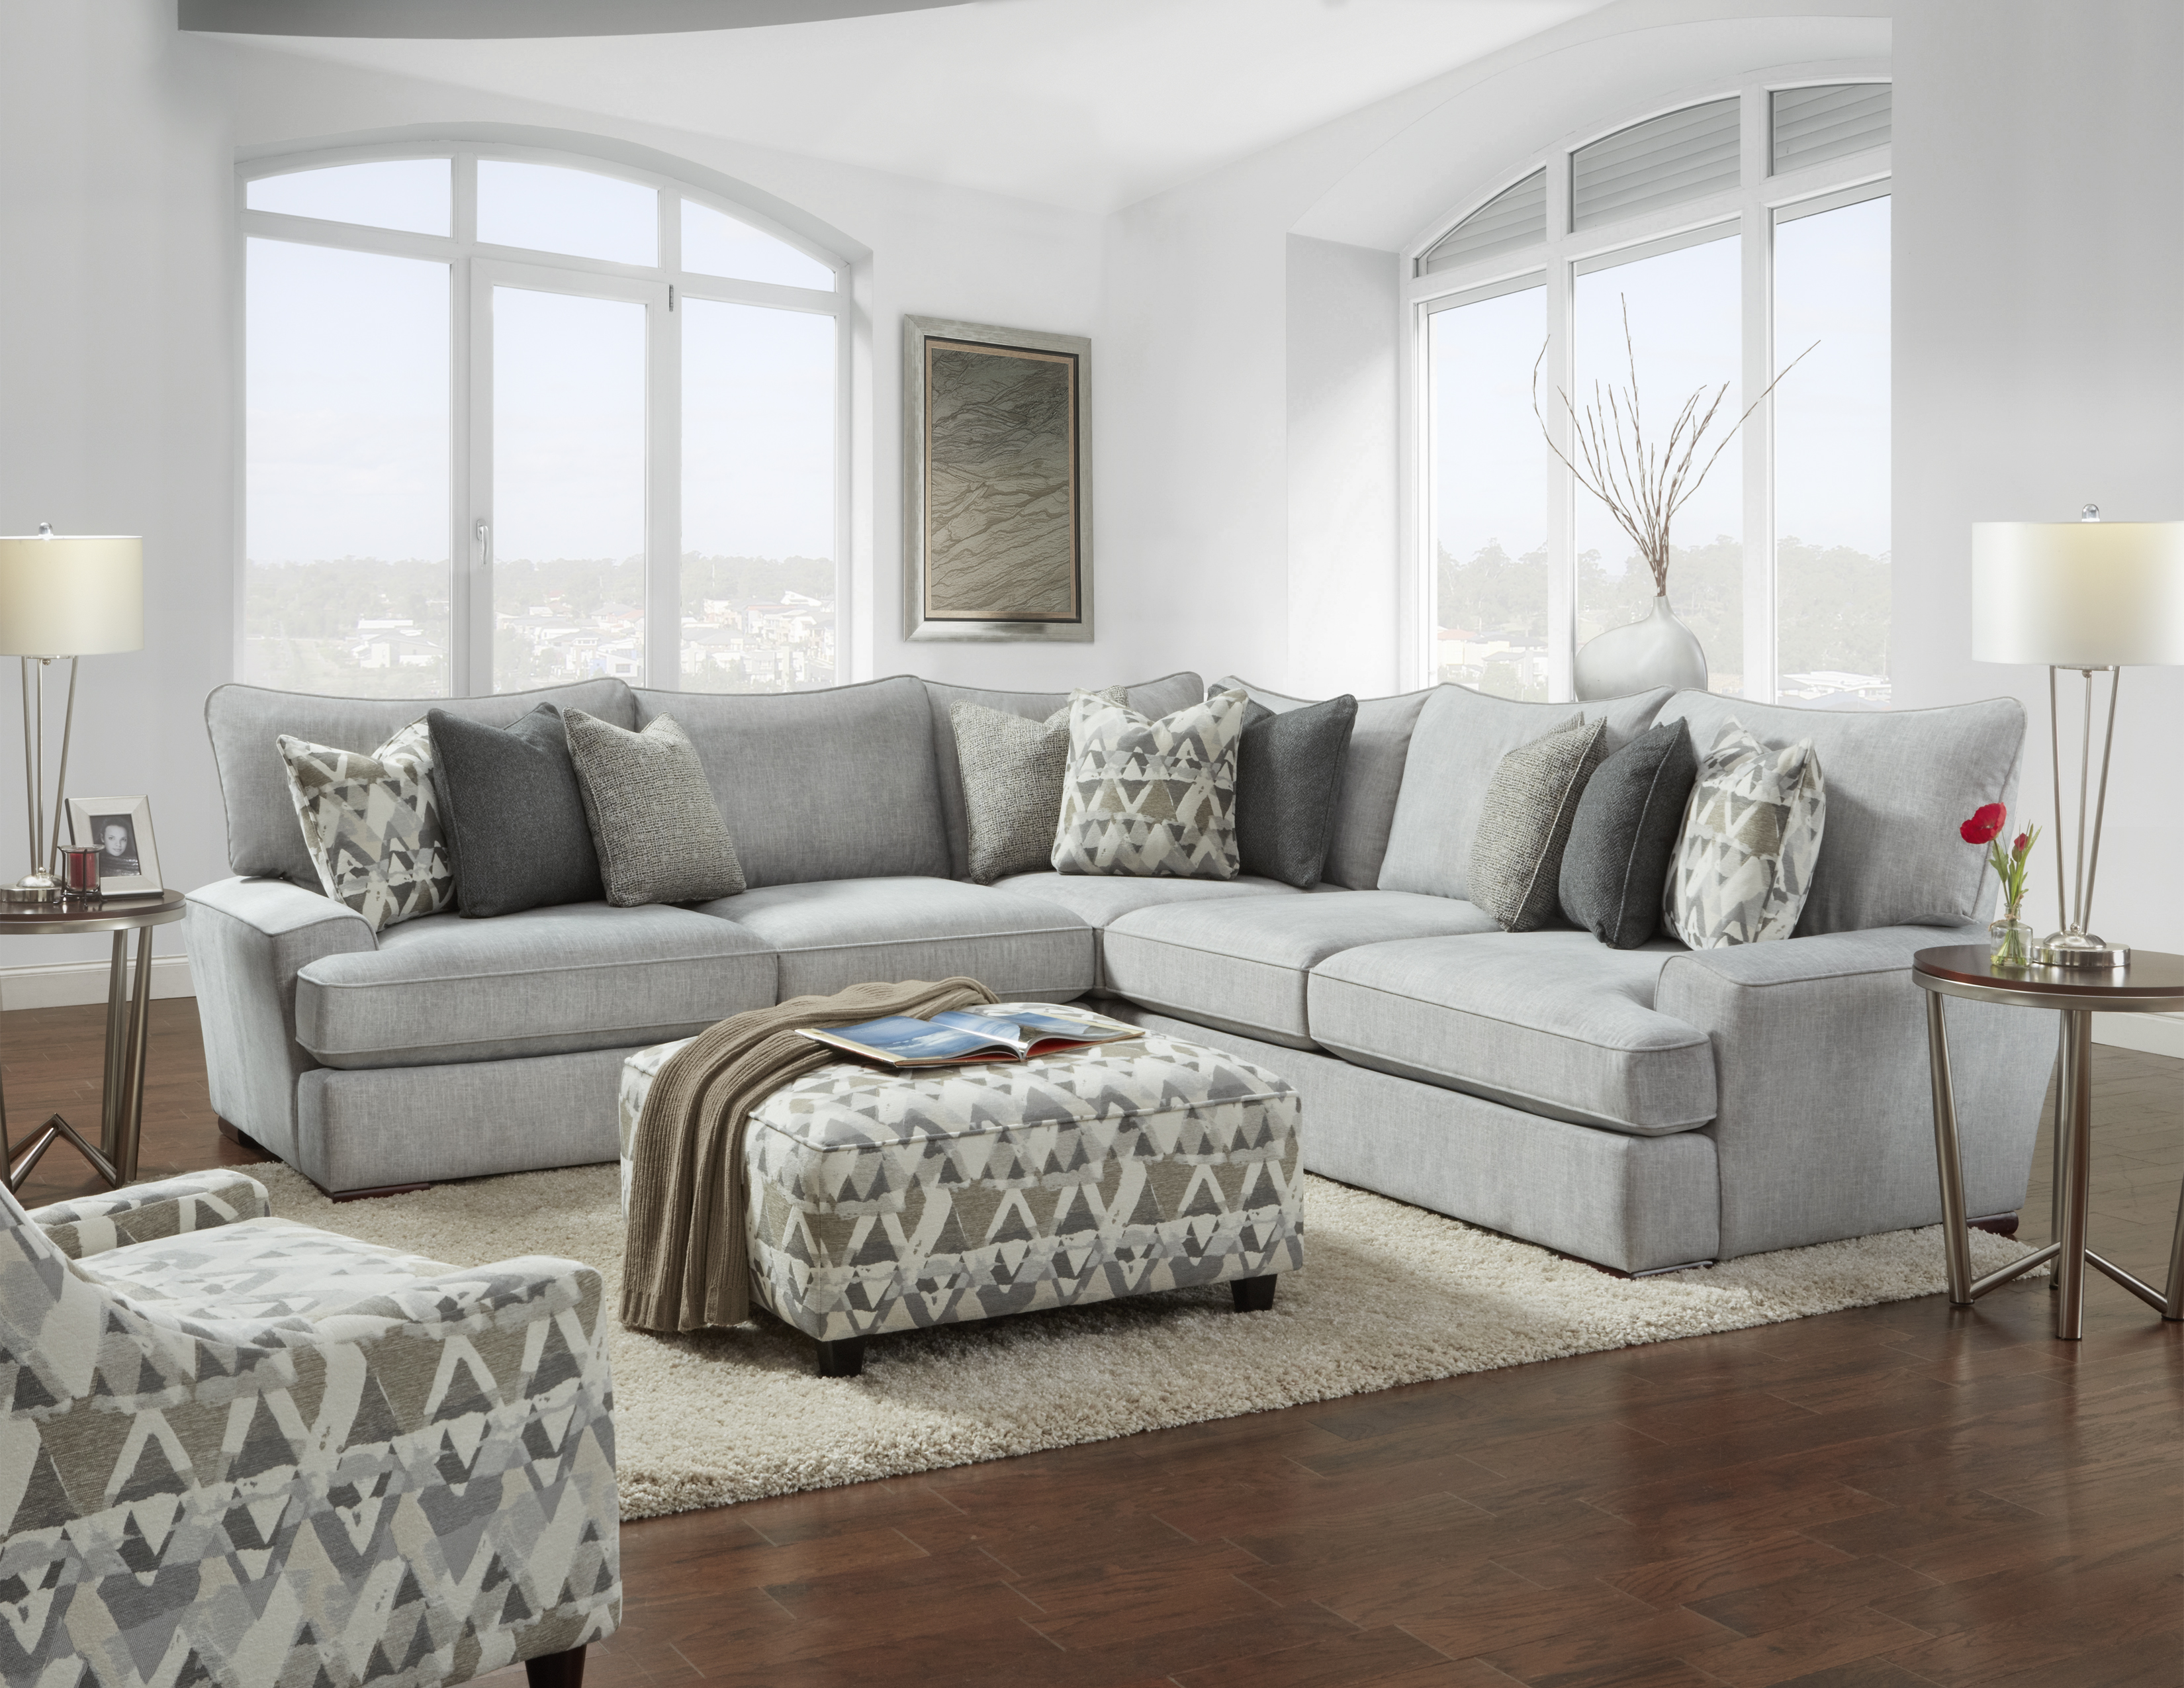 Fusion Furniture Alton Silver room collection